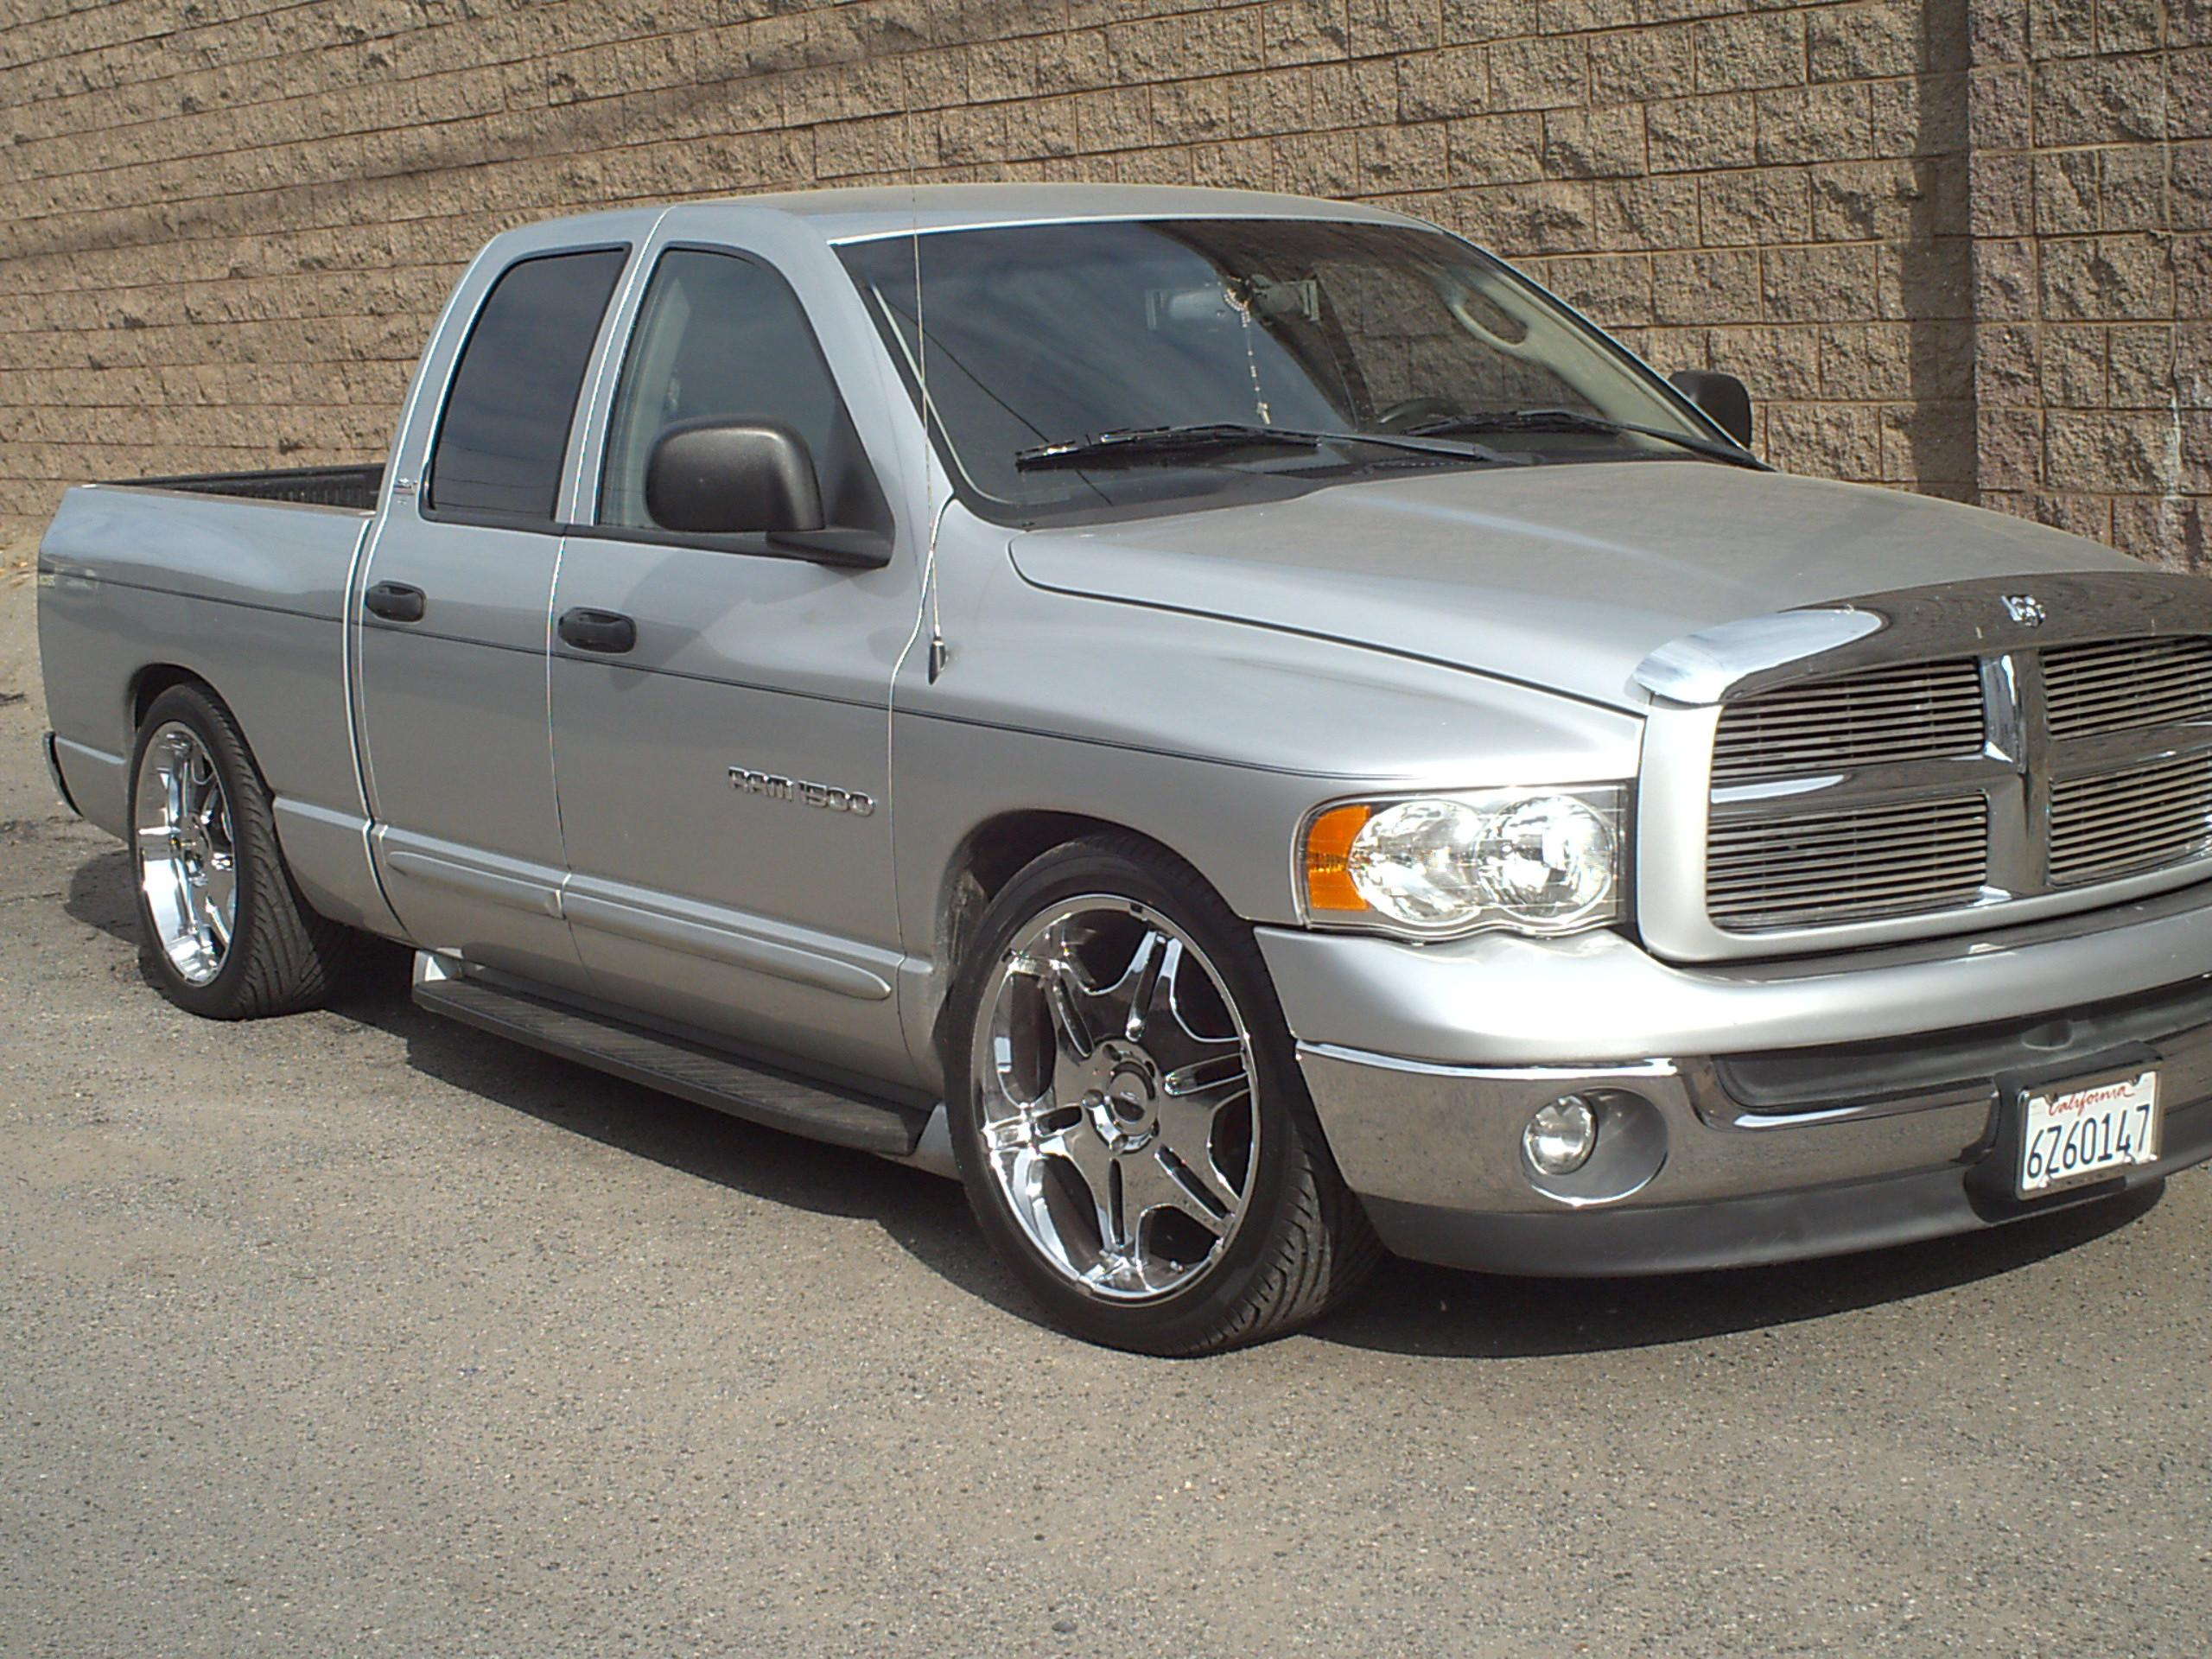 fernandezarturo 2002 dodge ram 1500 quad cab specs photos modification info at cardomain. Black Bedroom Furniture Sets. Home Design Ideas